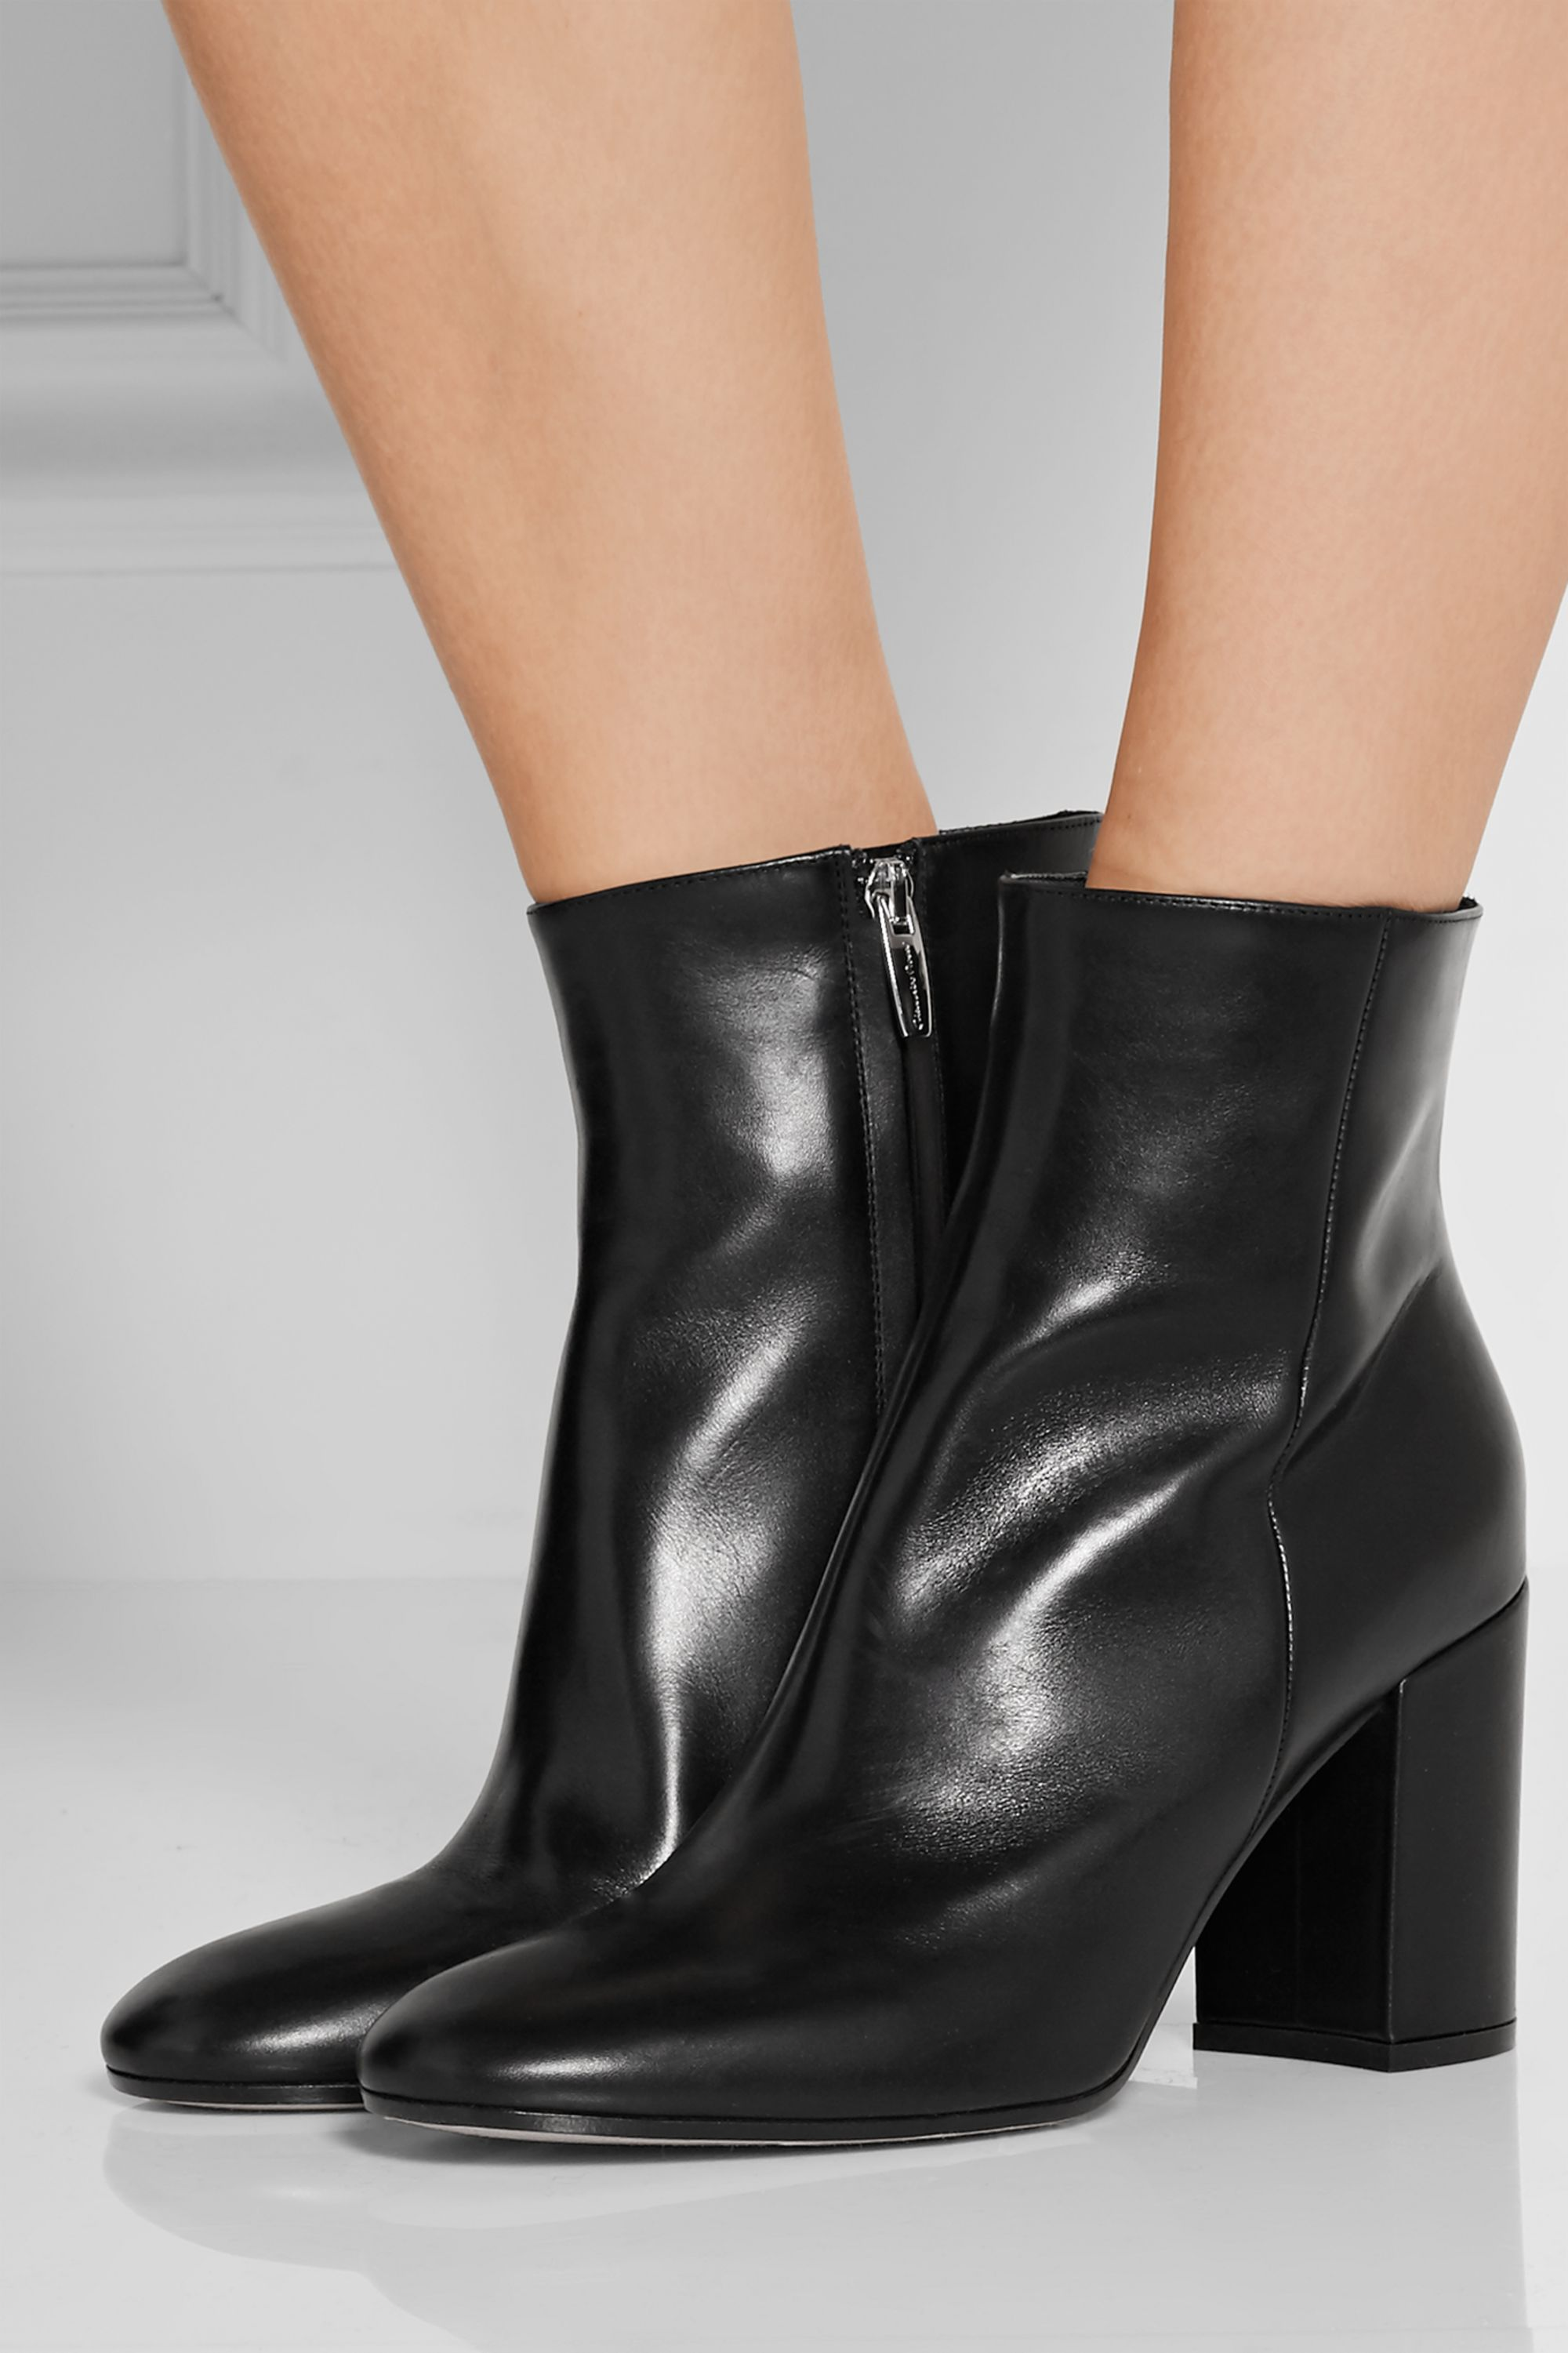 Gianvito Rossi 85 leather ankle boots